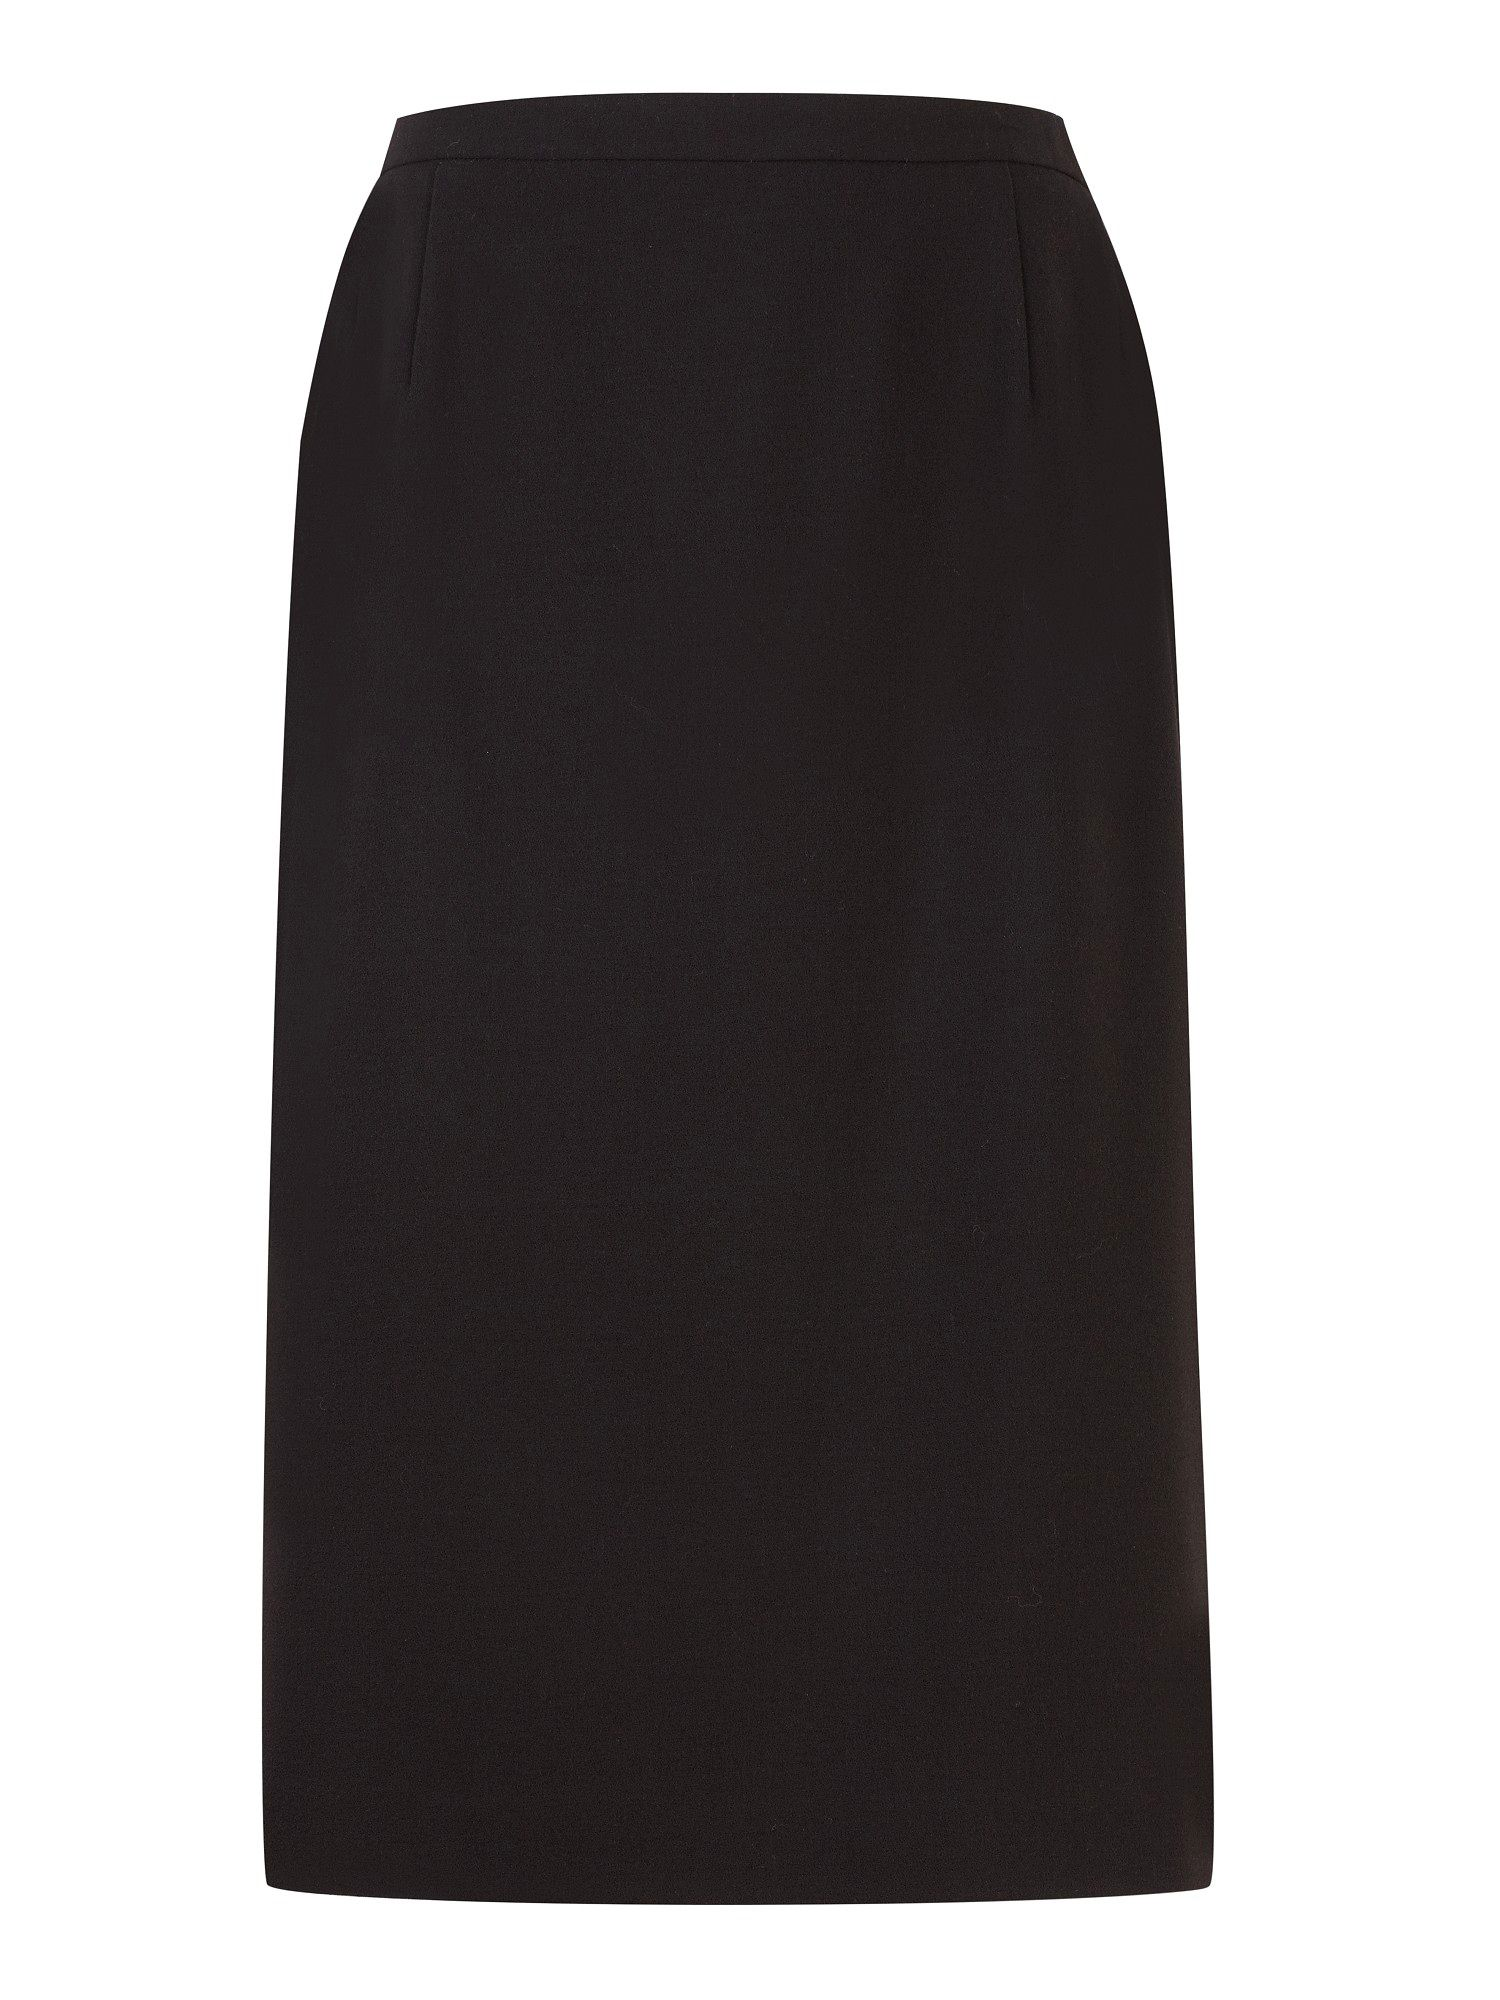 Moss crepe pencil skirt